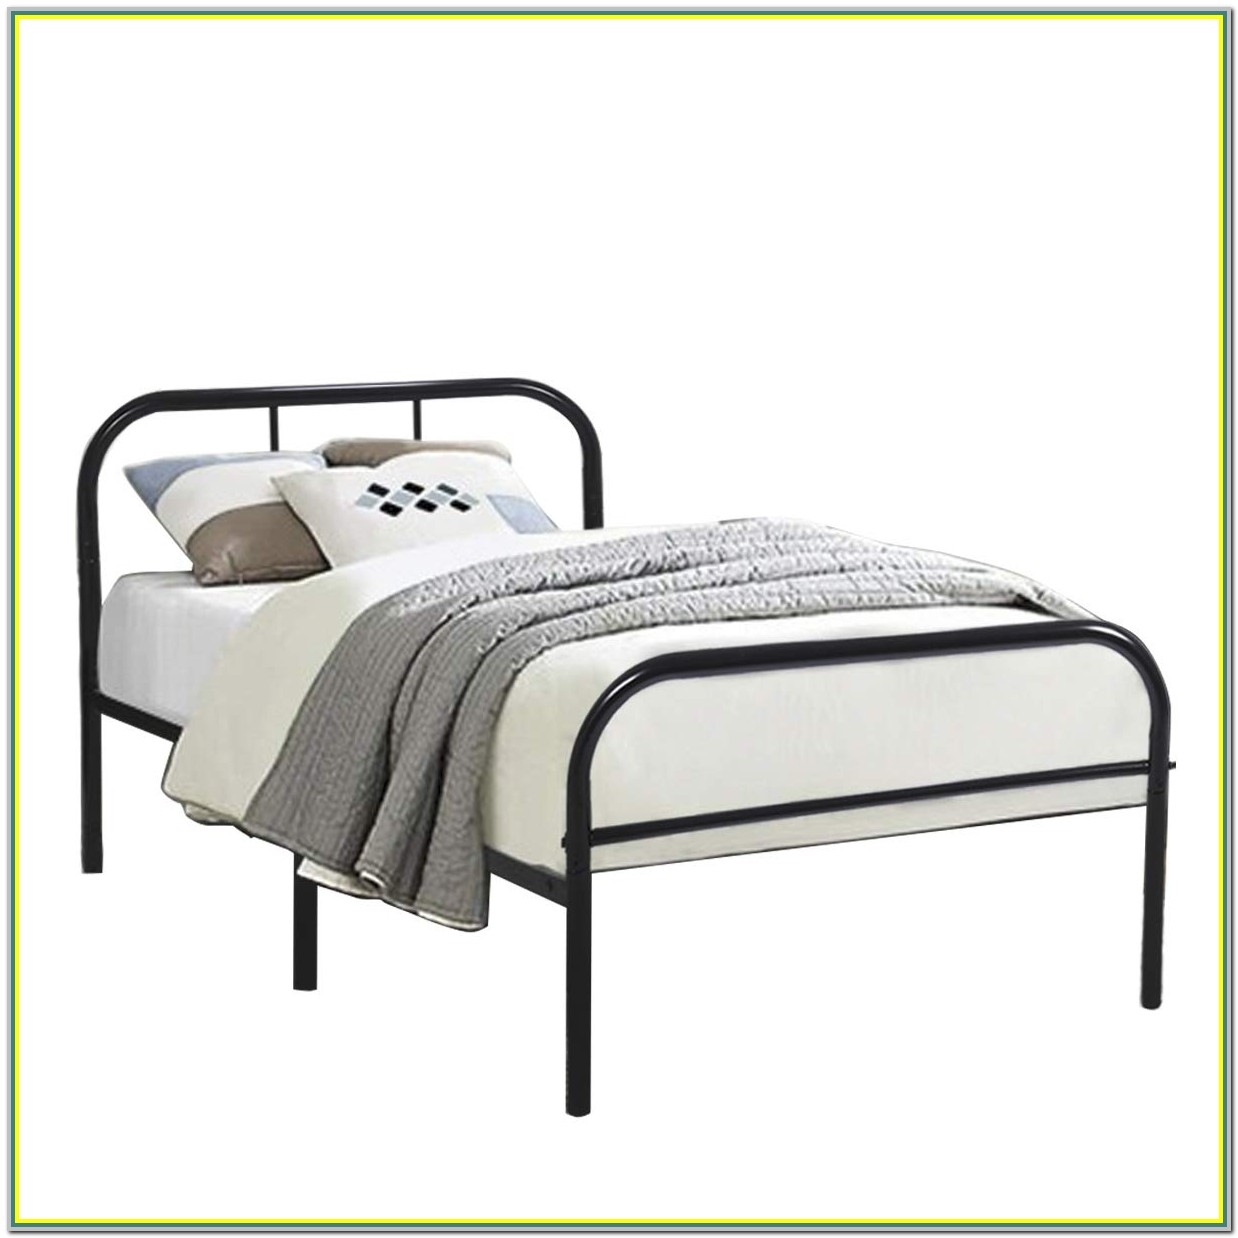 Extra Strong Bed Frame Uk